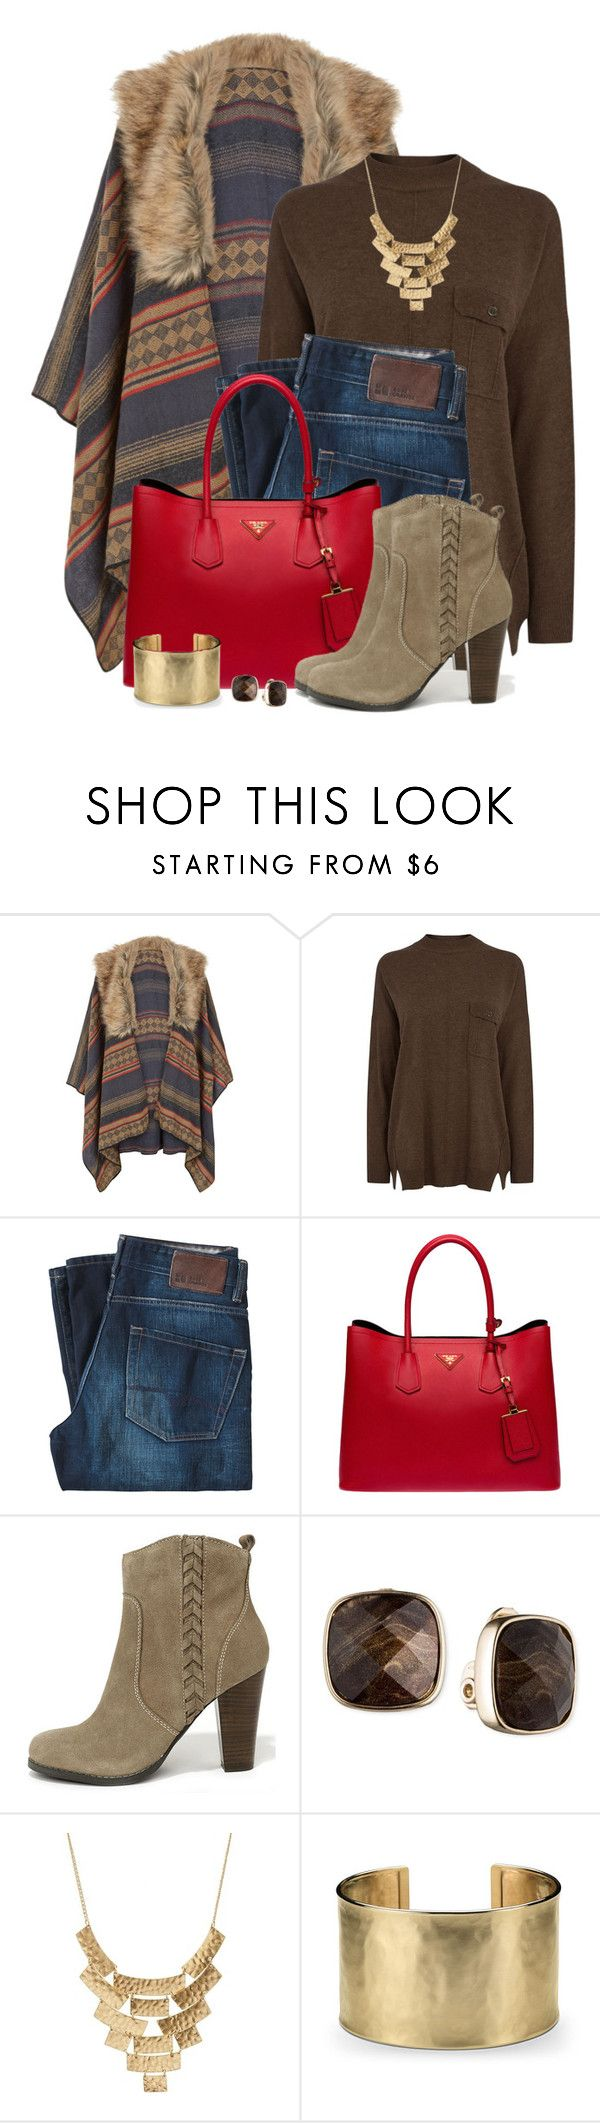 """""""Faux Fur Trim Poncho and Ankle Boots"""" by brendariley-1 ❤ liked on Polyvore featuring Accessorize, Warehouse, BOSS Orange, Prada, Very Volatile, Anne Klein, Charlotte Russe and Blue Nile"""